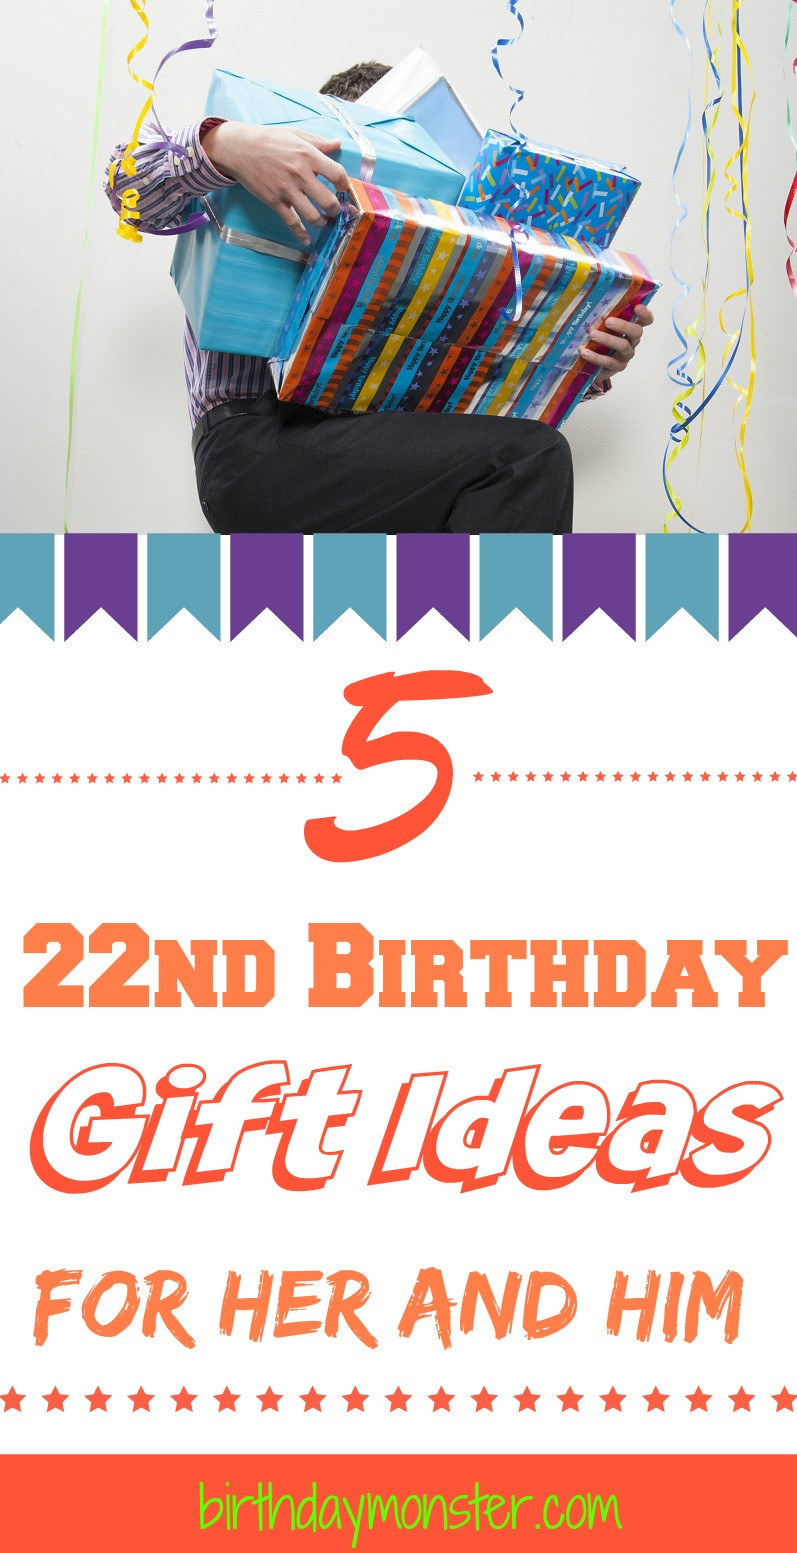 22Nd Birthday Gift Ideas  22nd Birthday Gift Ideas for Her and Him Birthday Monster